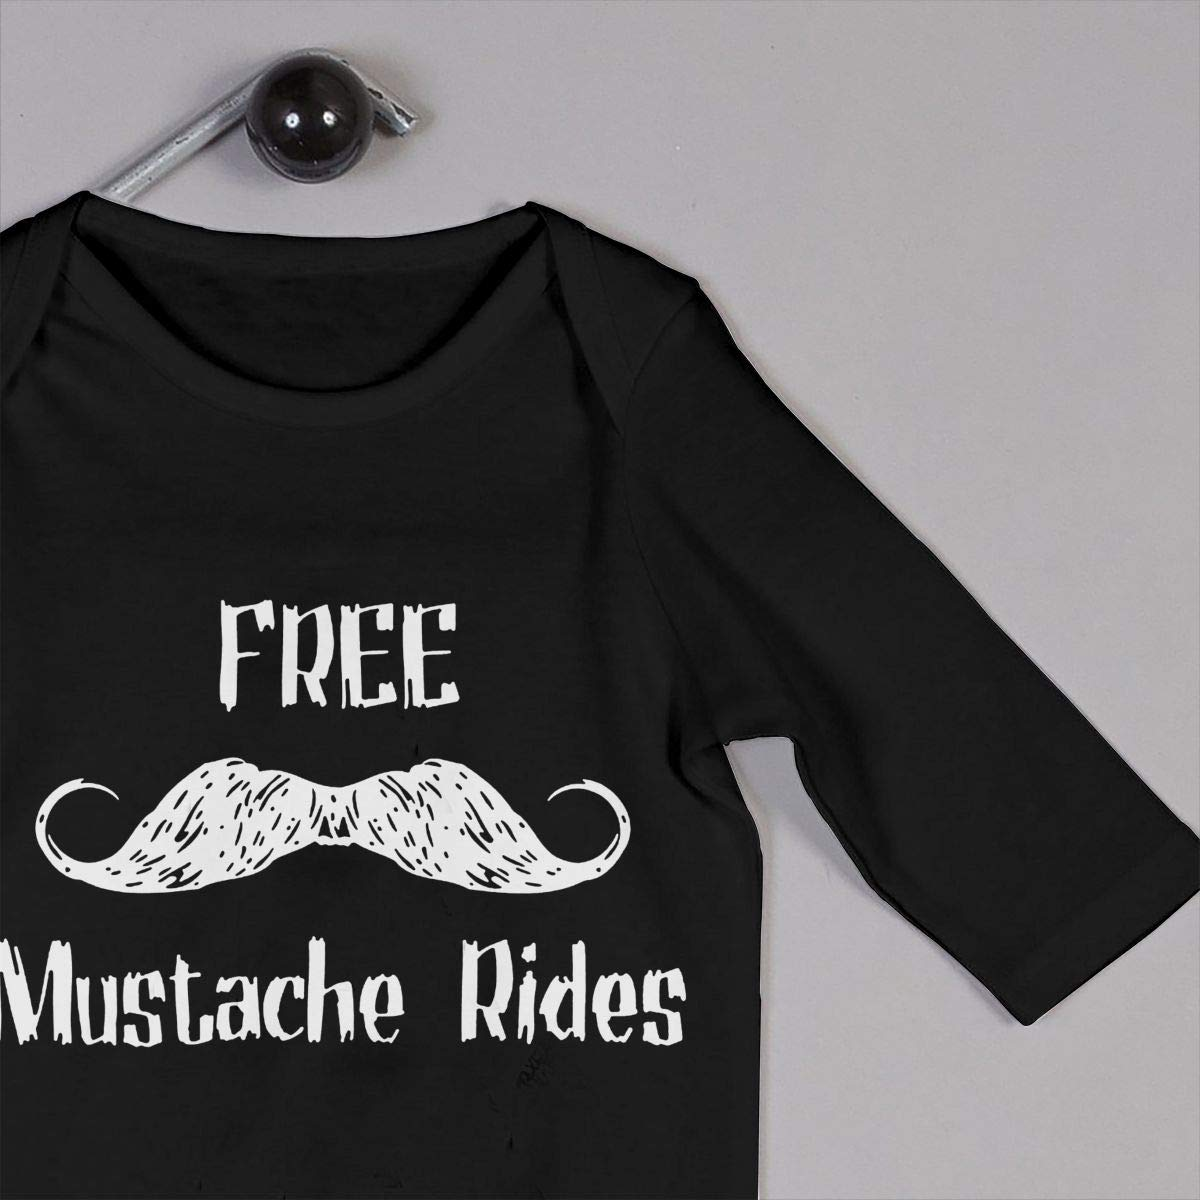 KAYERDELLE Free Mustache Rides Long-Sleeve Unisex Baby Romper for 6-24 Months Boys /& Girls